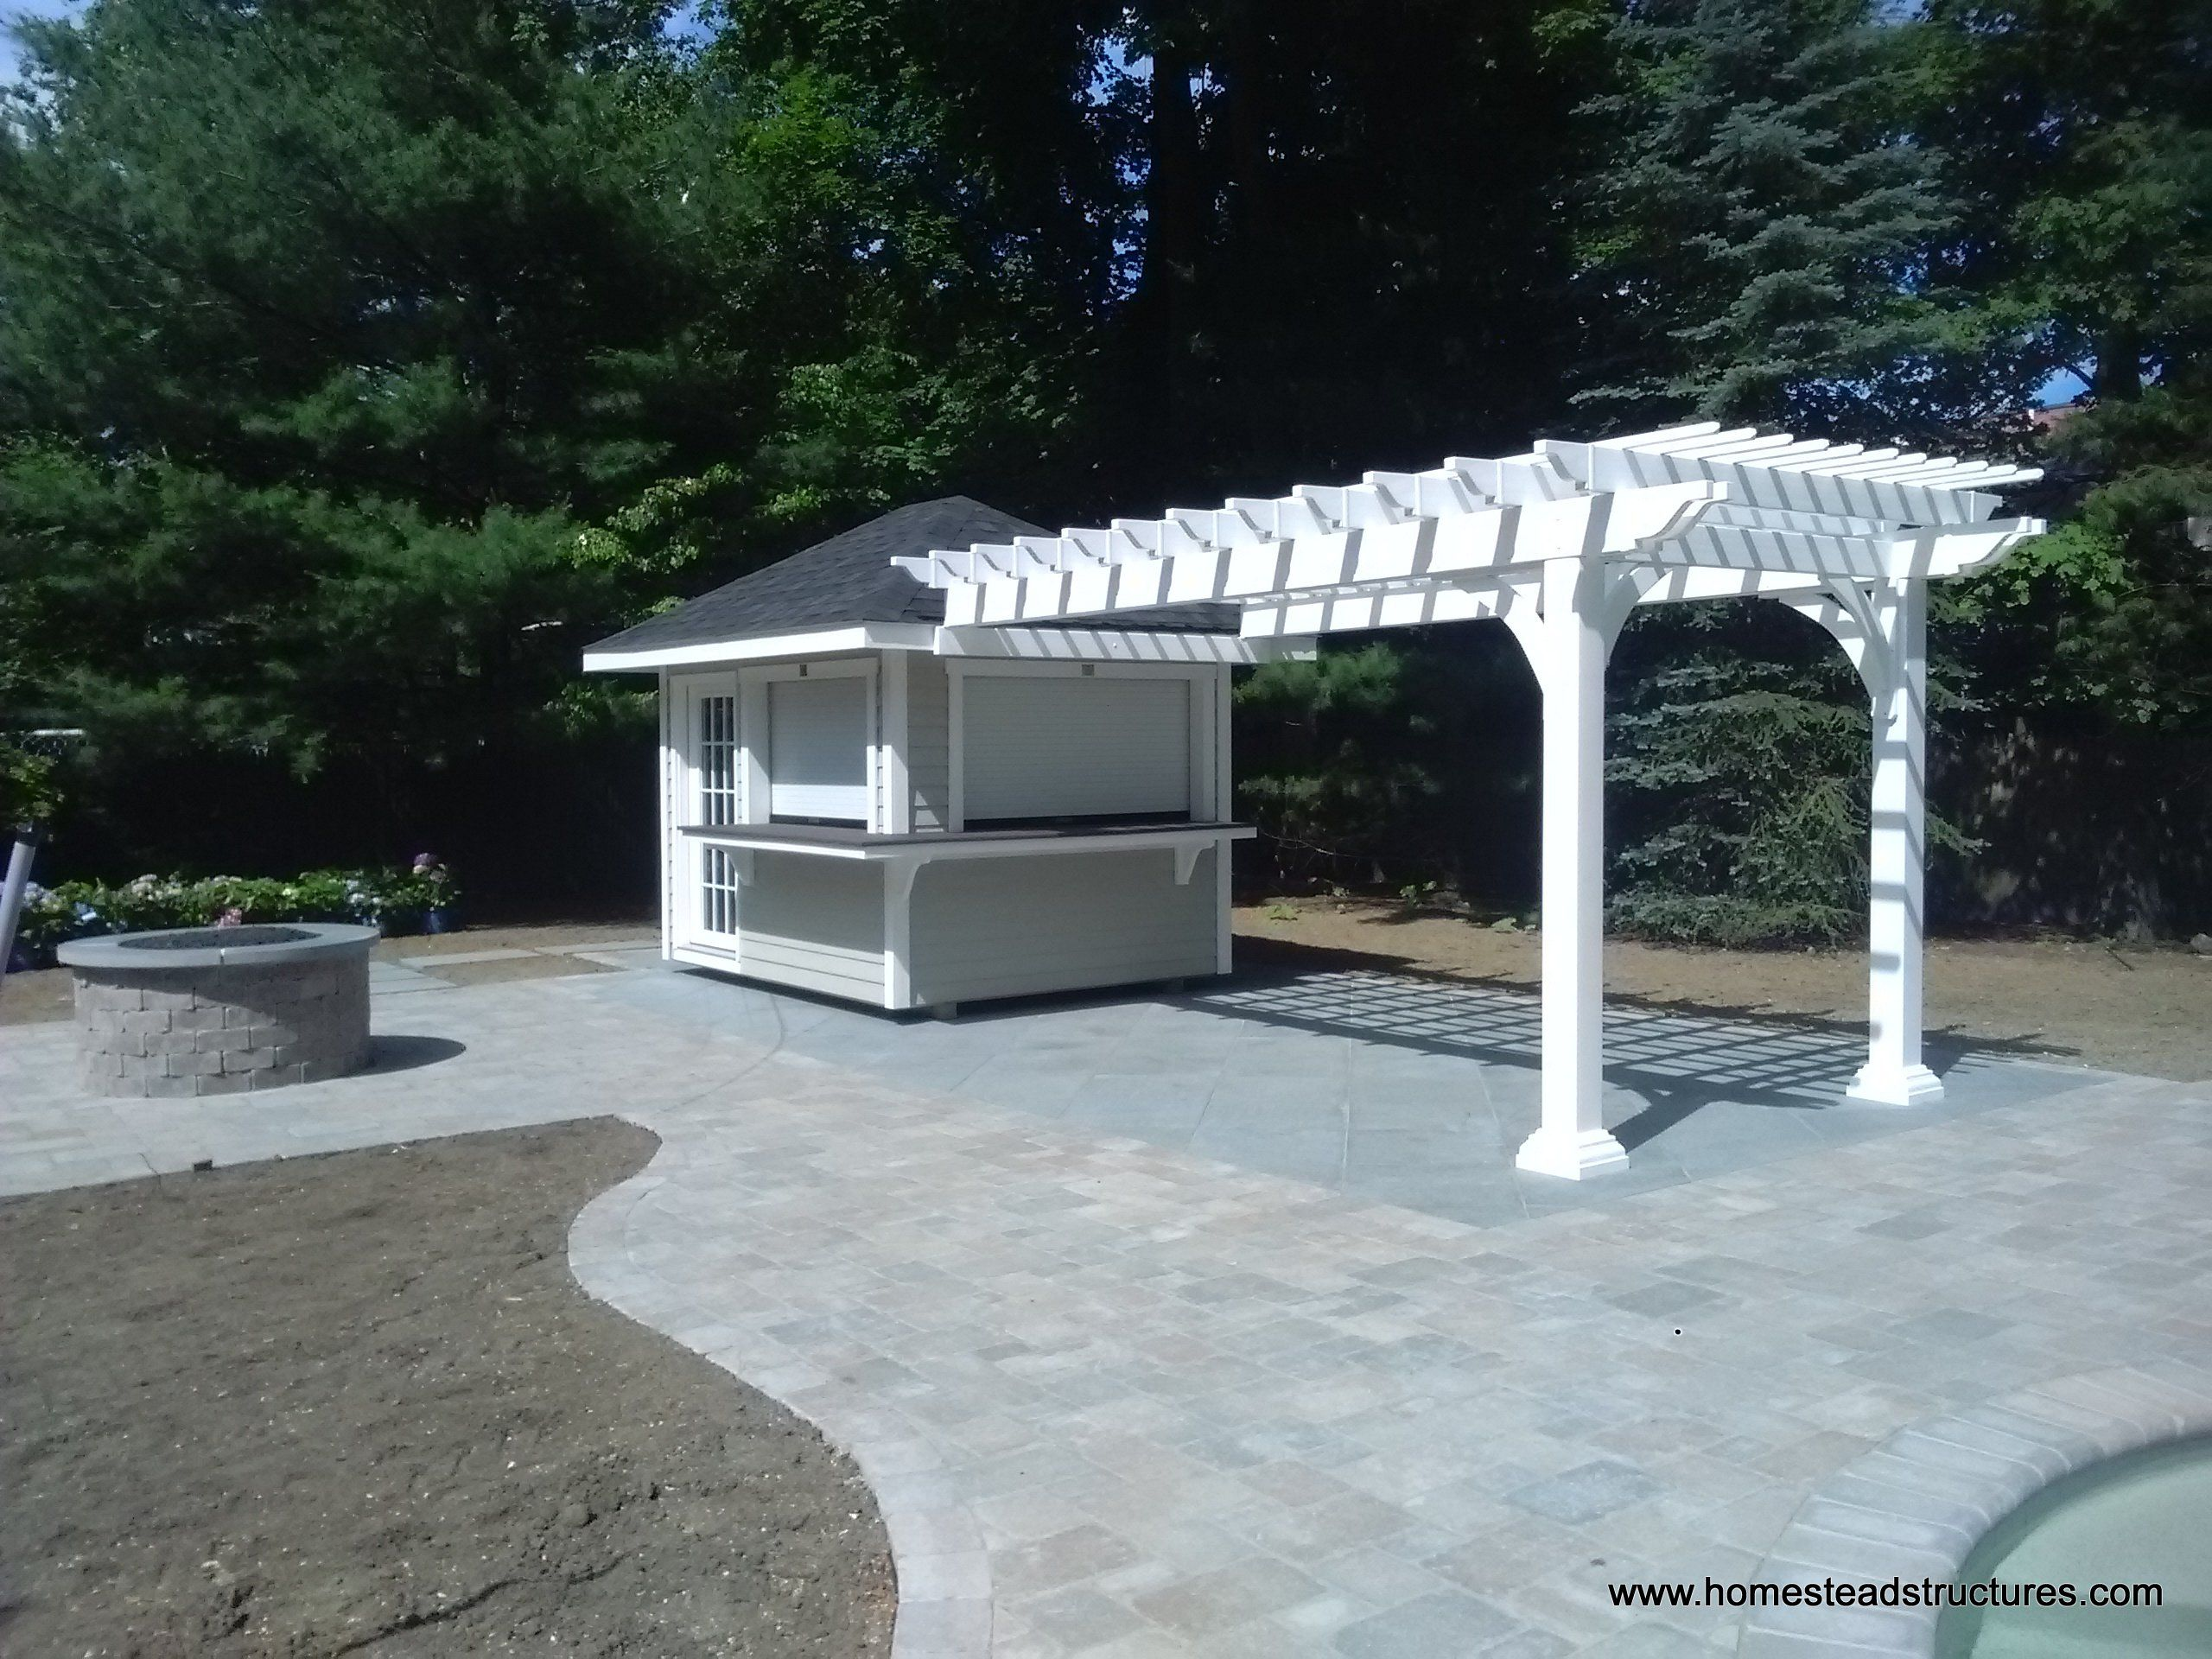 8x26 Pool Cabana And Pergola Combo Check Out Those Roll Up Concession Windows Perfect For Serving Guests By The Pool Pergola Wood Pergola Backyard Pergola